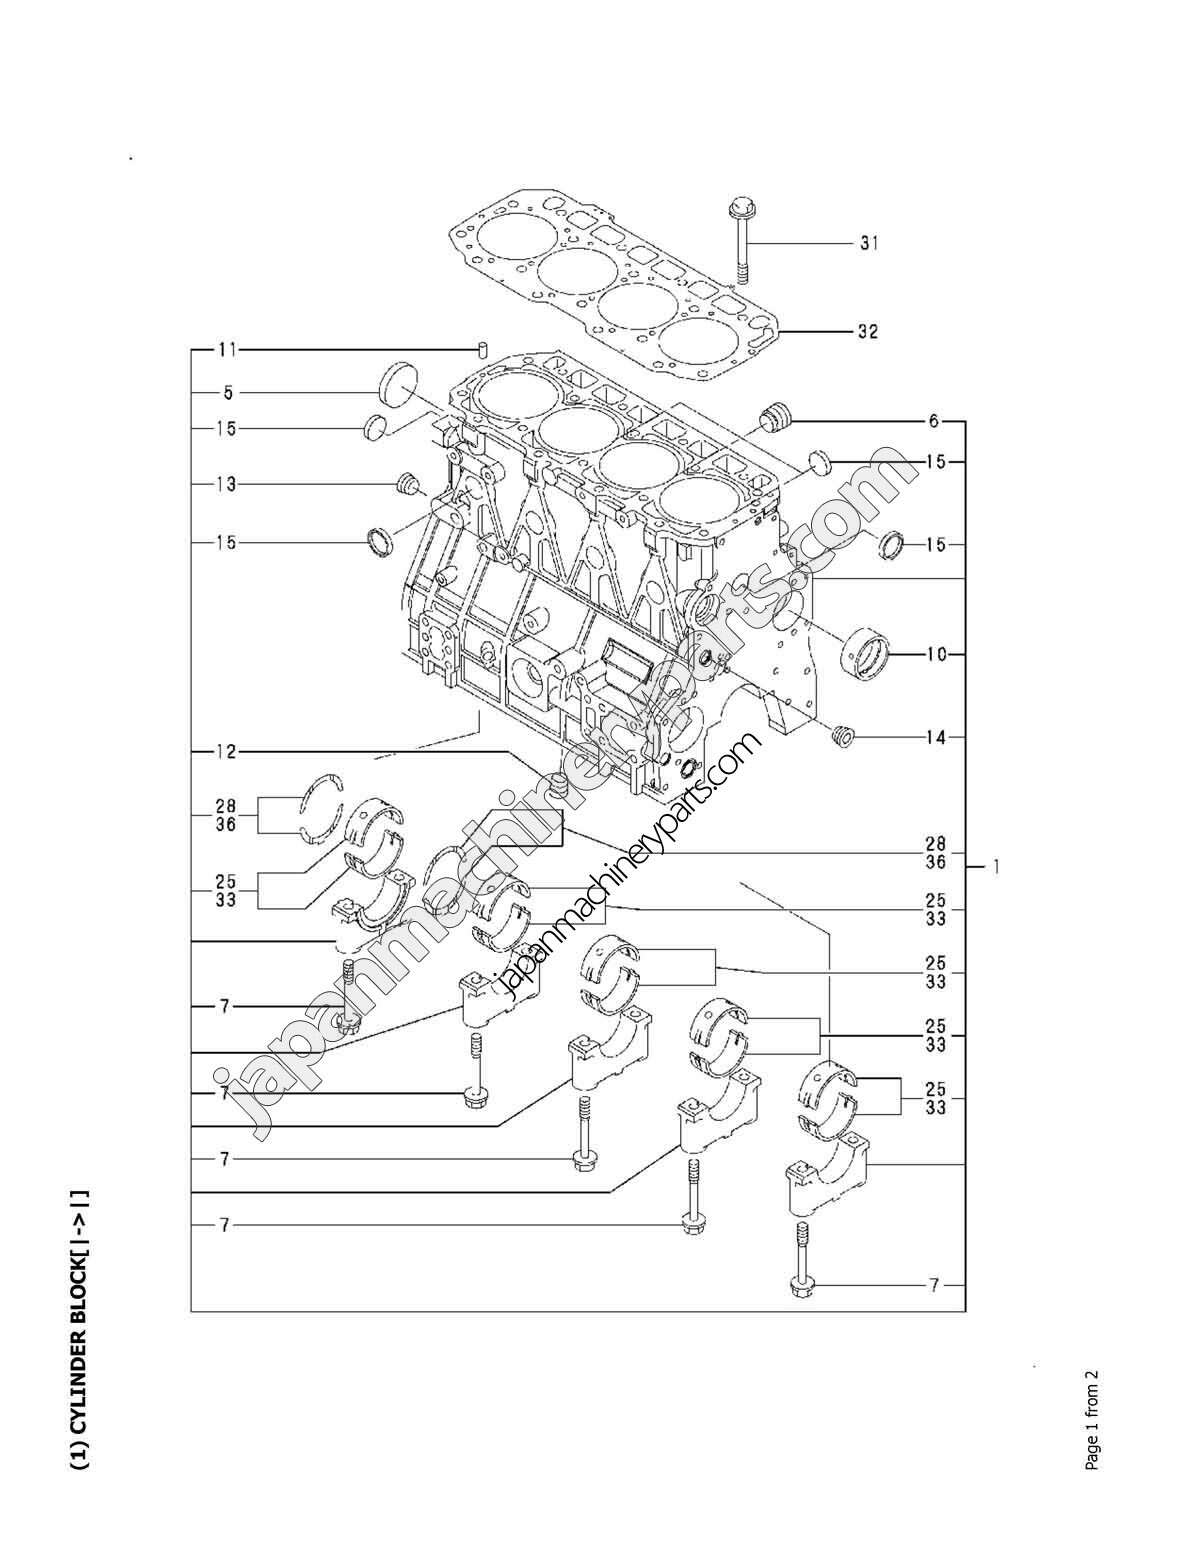 For 7700 Ford Tractor Wiring Diagram Wiring Ford 2600 Tractor Diagram 2910  Ford Tractor Wiring Diagram